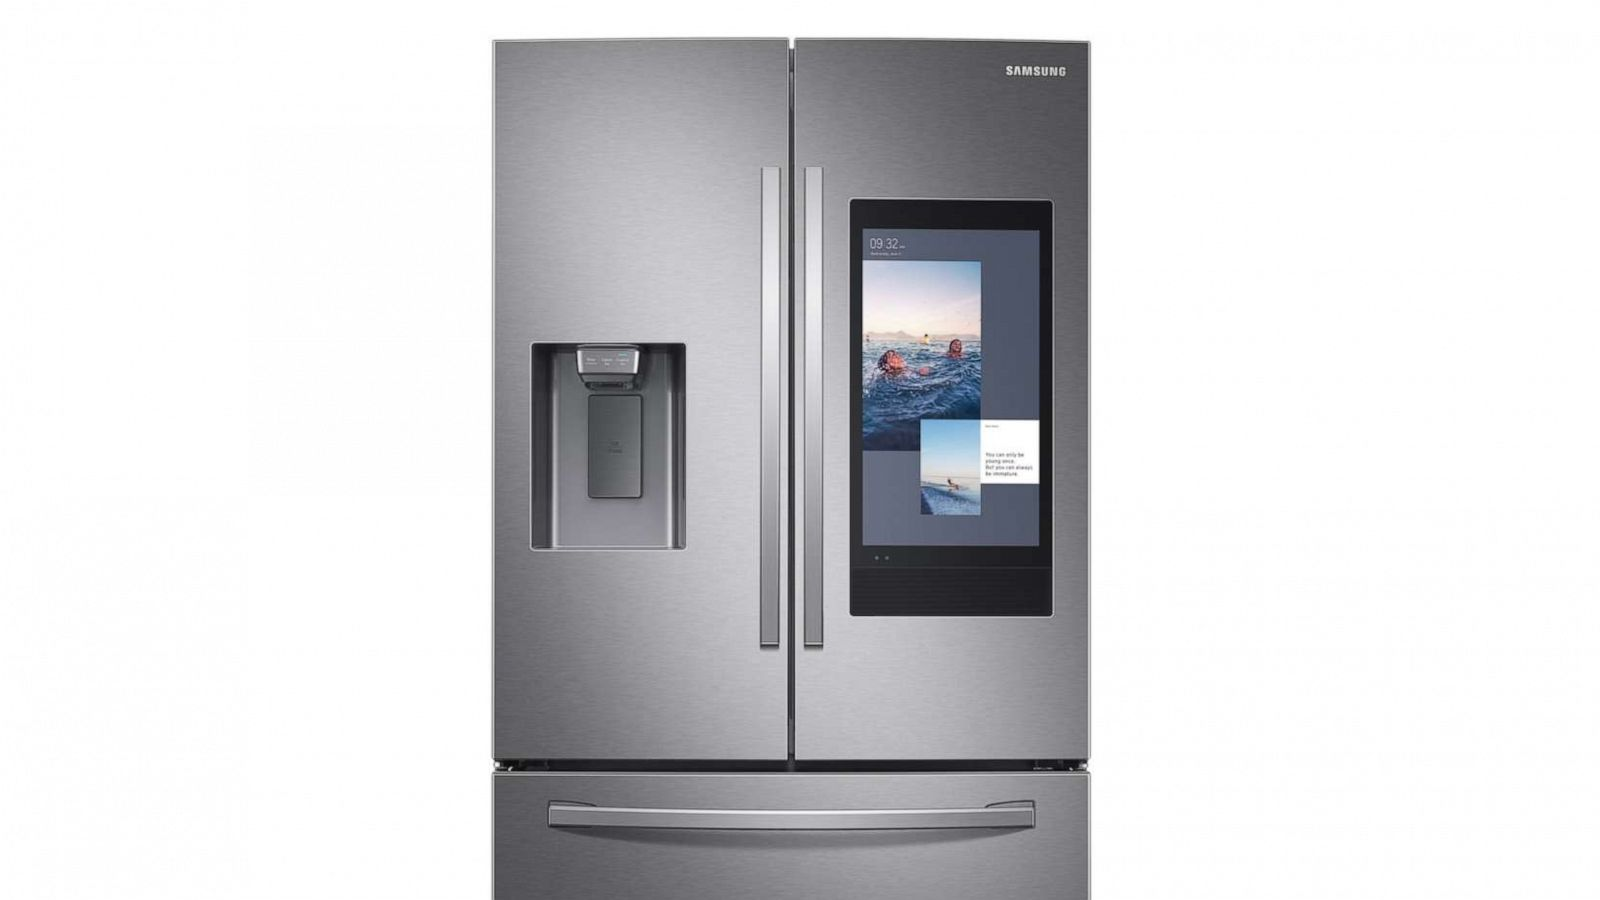 New Tech Suggests Recipes Based On The Food Already In Your Fridge Abc News